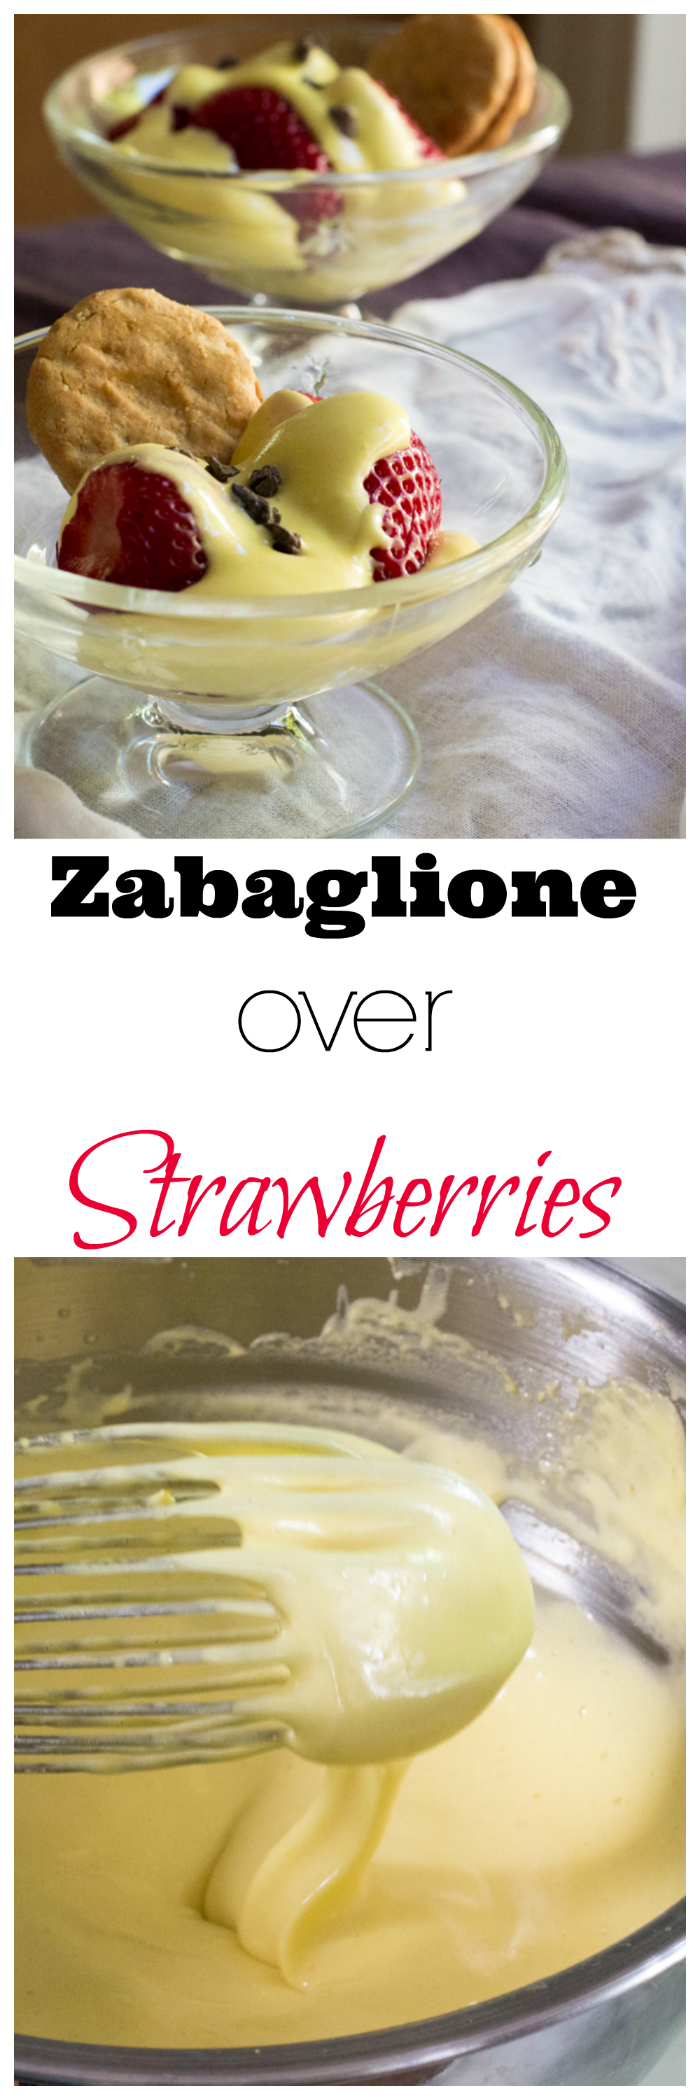 Step-by-step instructions on how to make zabaglione, a light and frothy custard dessert popular in Italy.